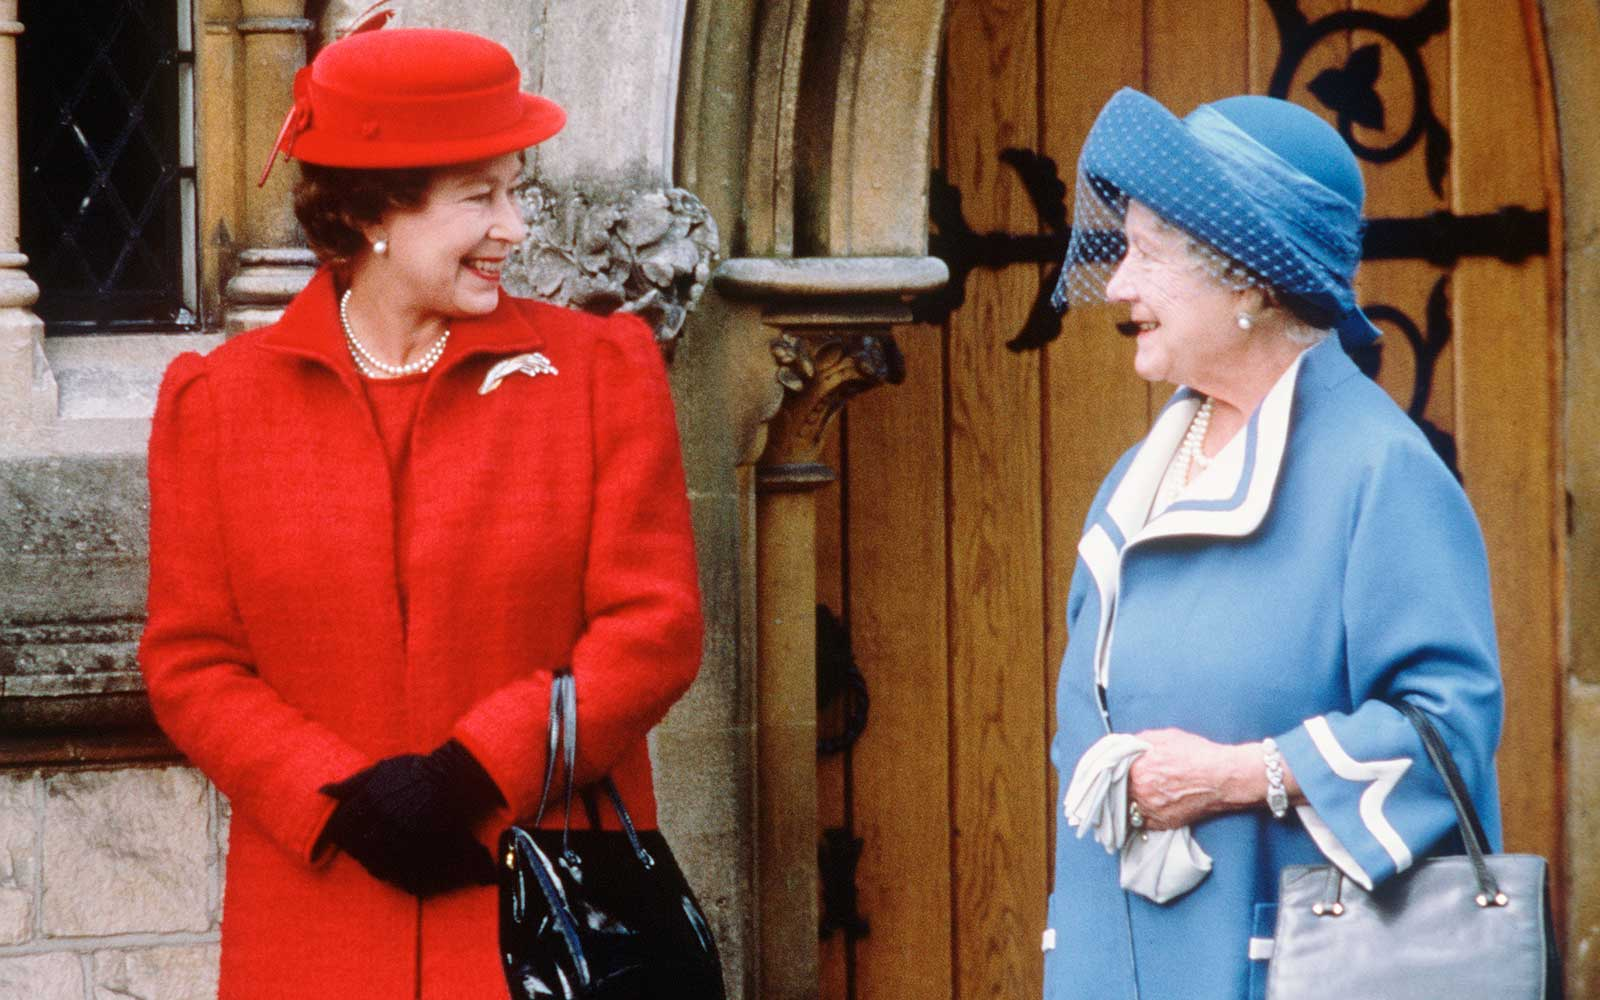 The One Piece of Advice From the Queen's Mother That Made Her More Confident